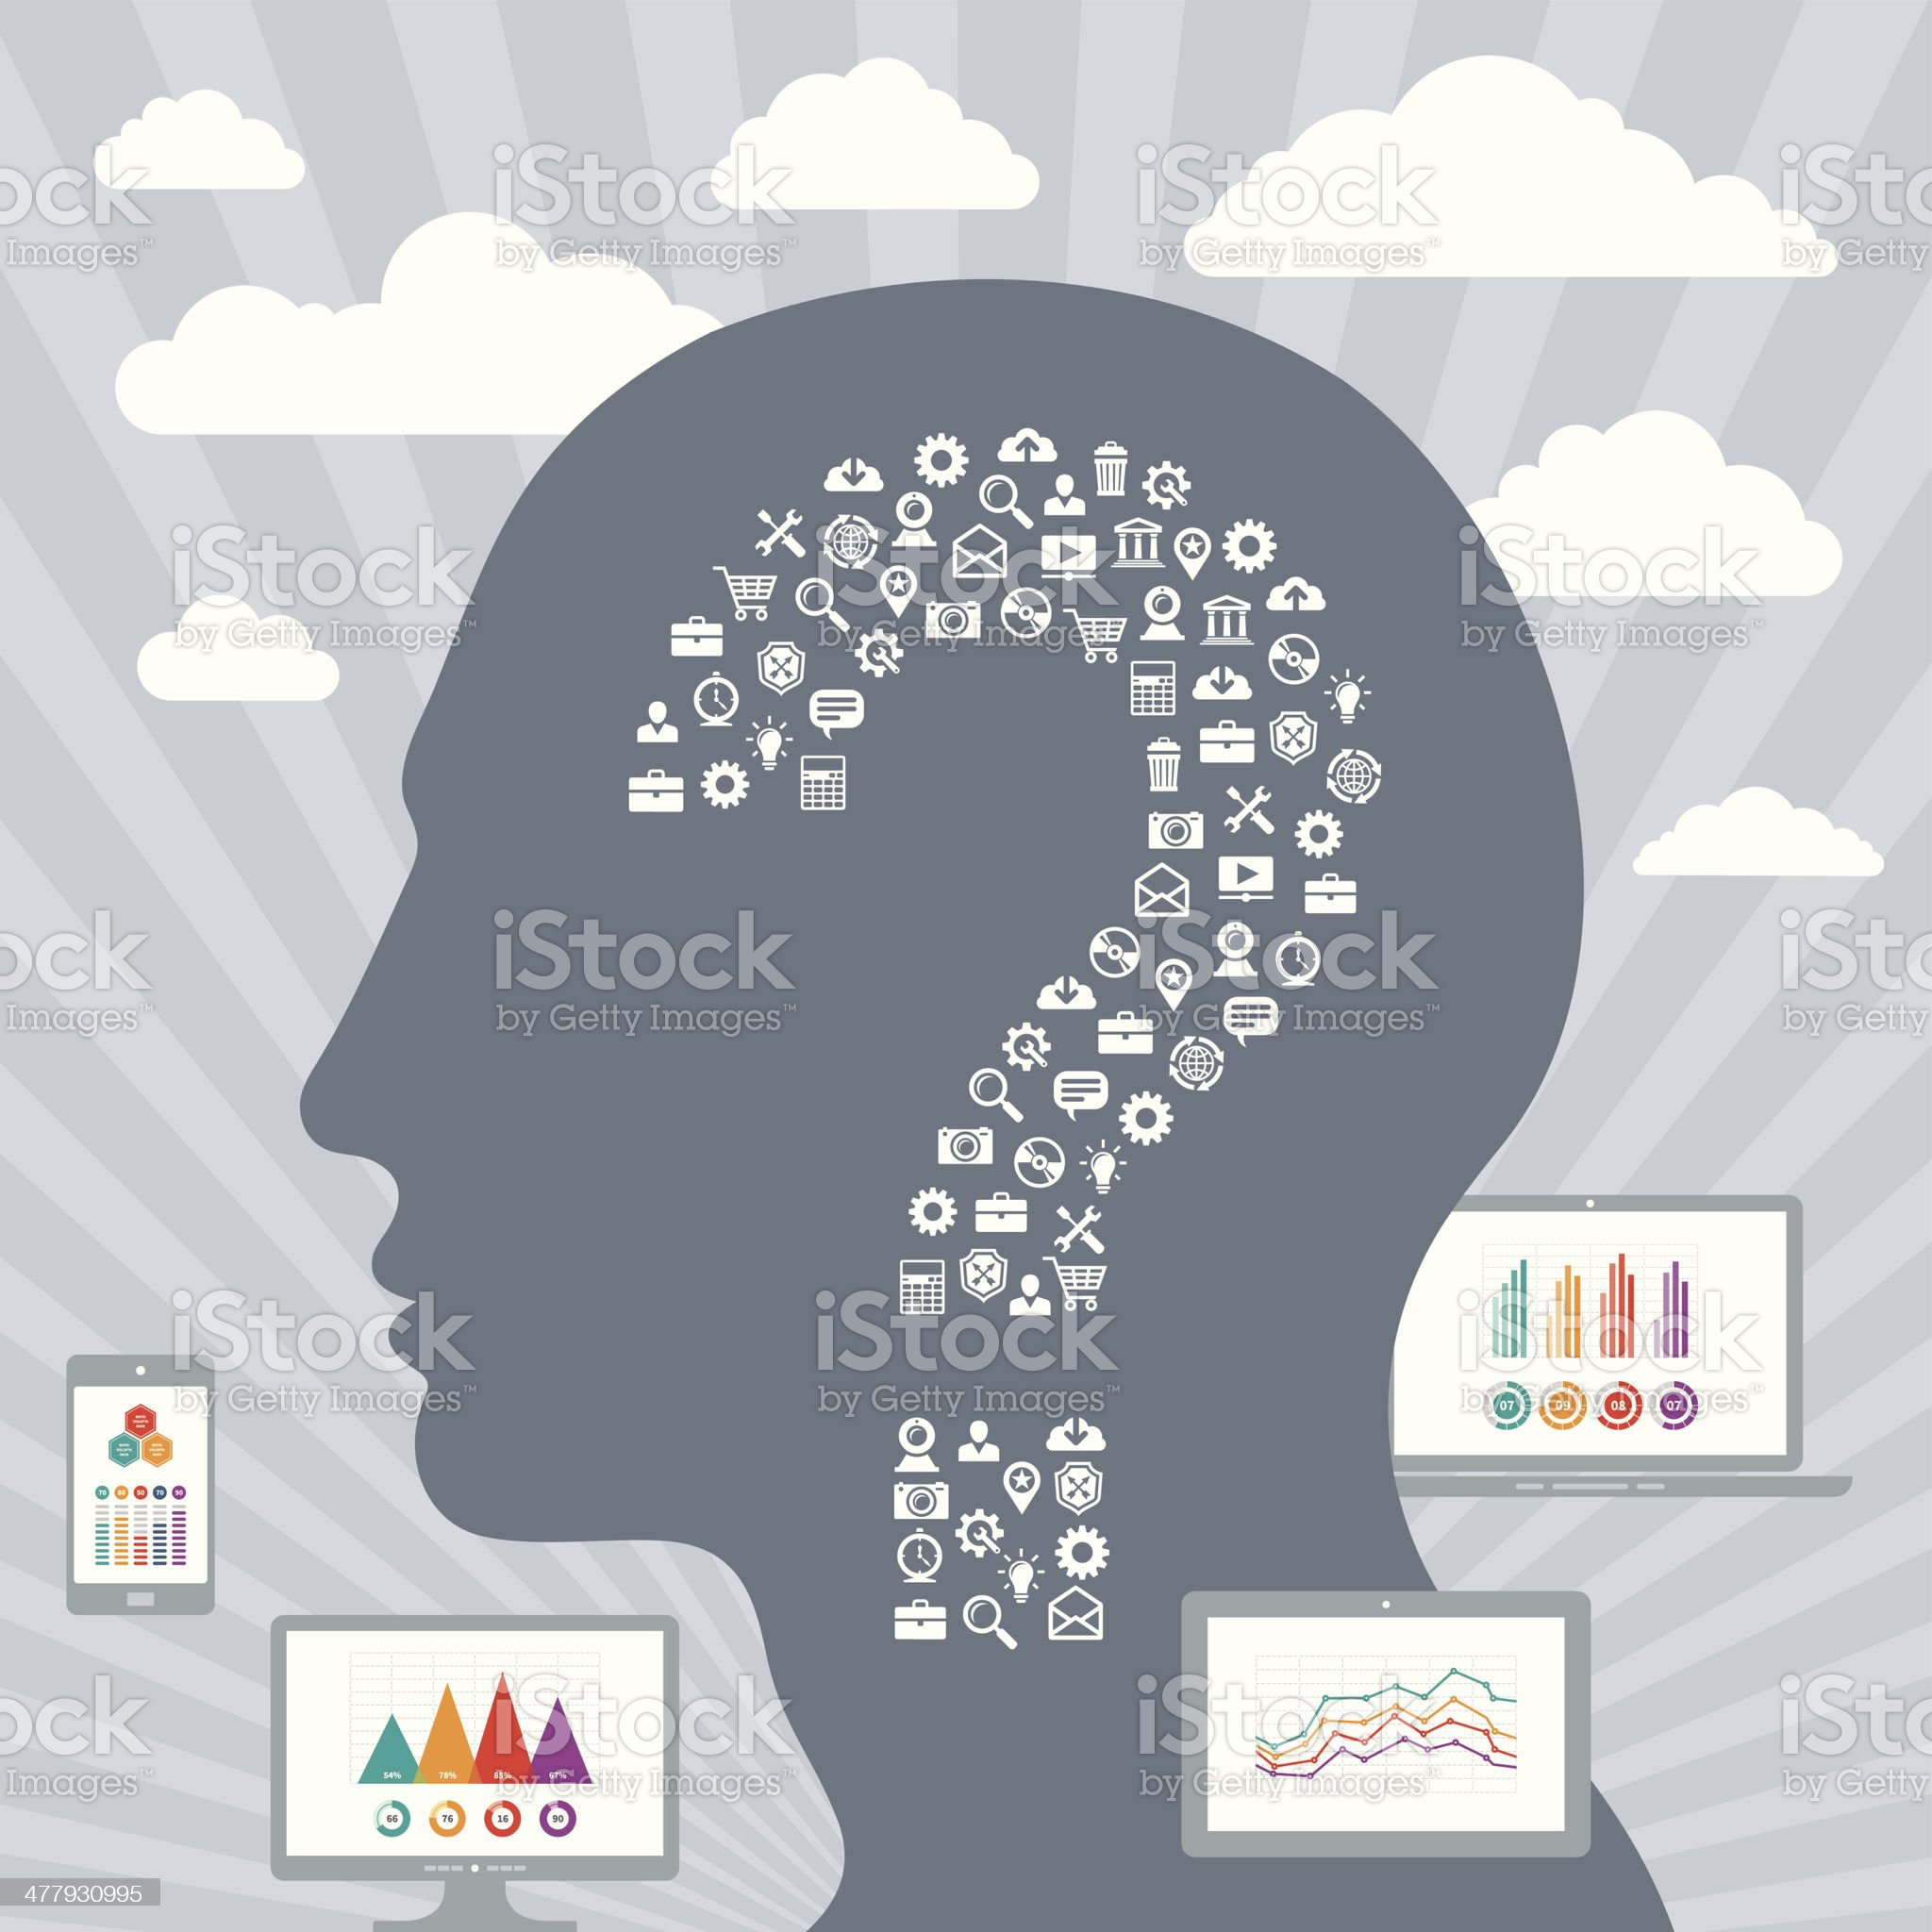 Infographic Concept with a Human Head & Displays royalty-free stock vector art